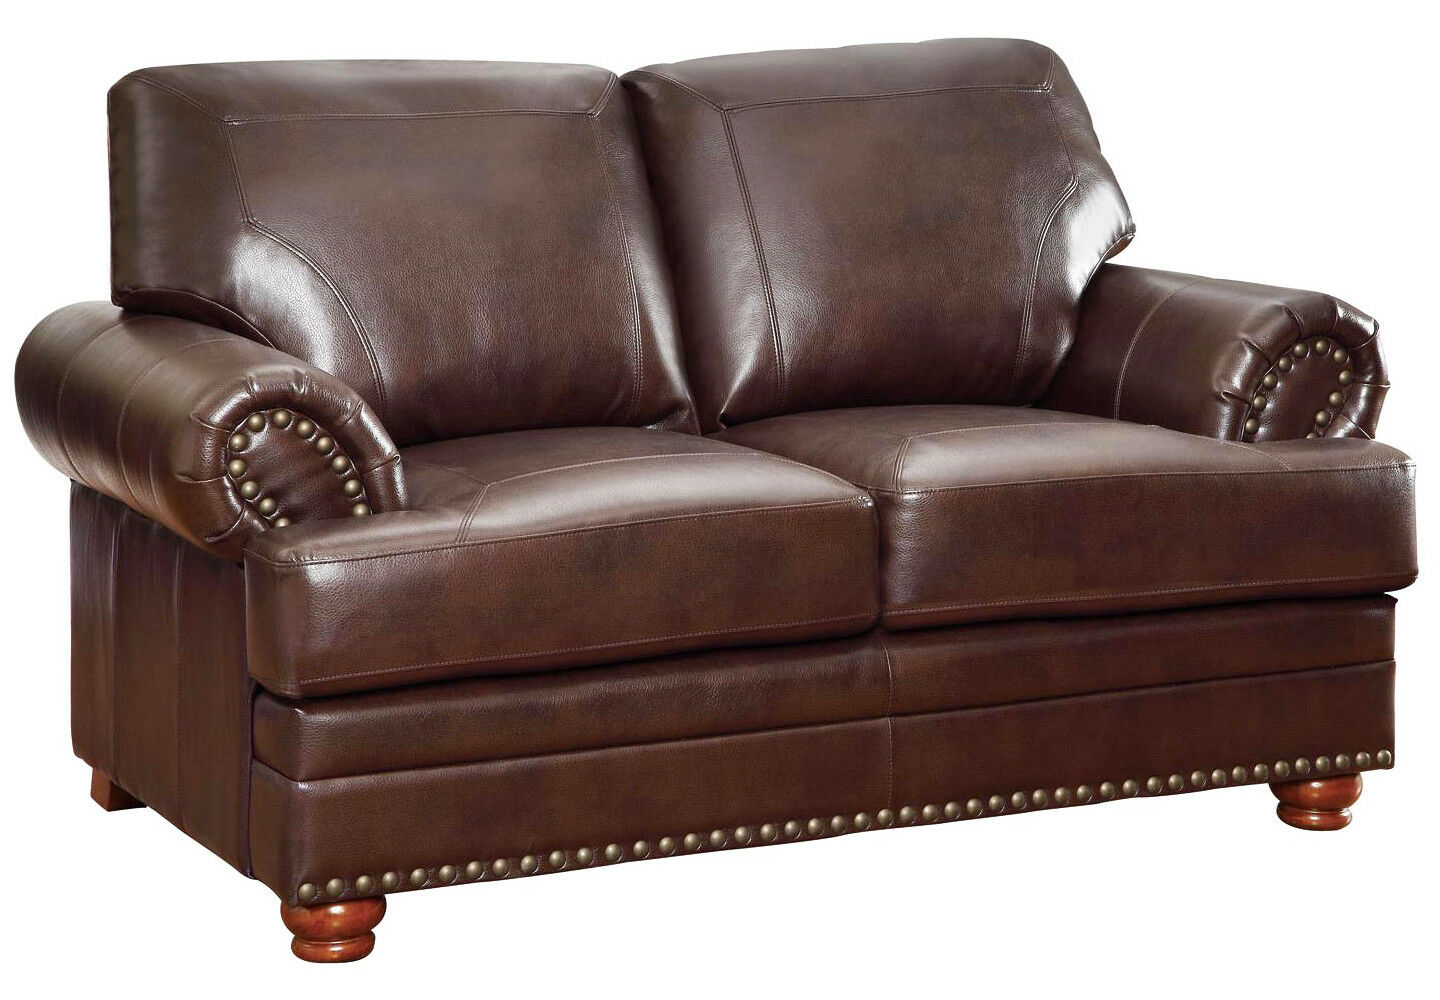 Awe Inspiring Details About Traditional Antique Brown Bonded Leather Loveseat W Rolled Arms Nailhead Trim Bralicious Painted Fabric Chair Ideas Braliciousco